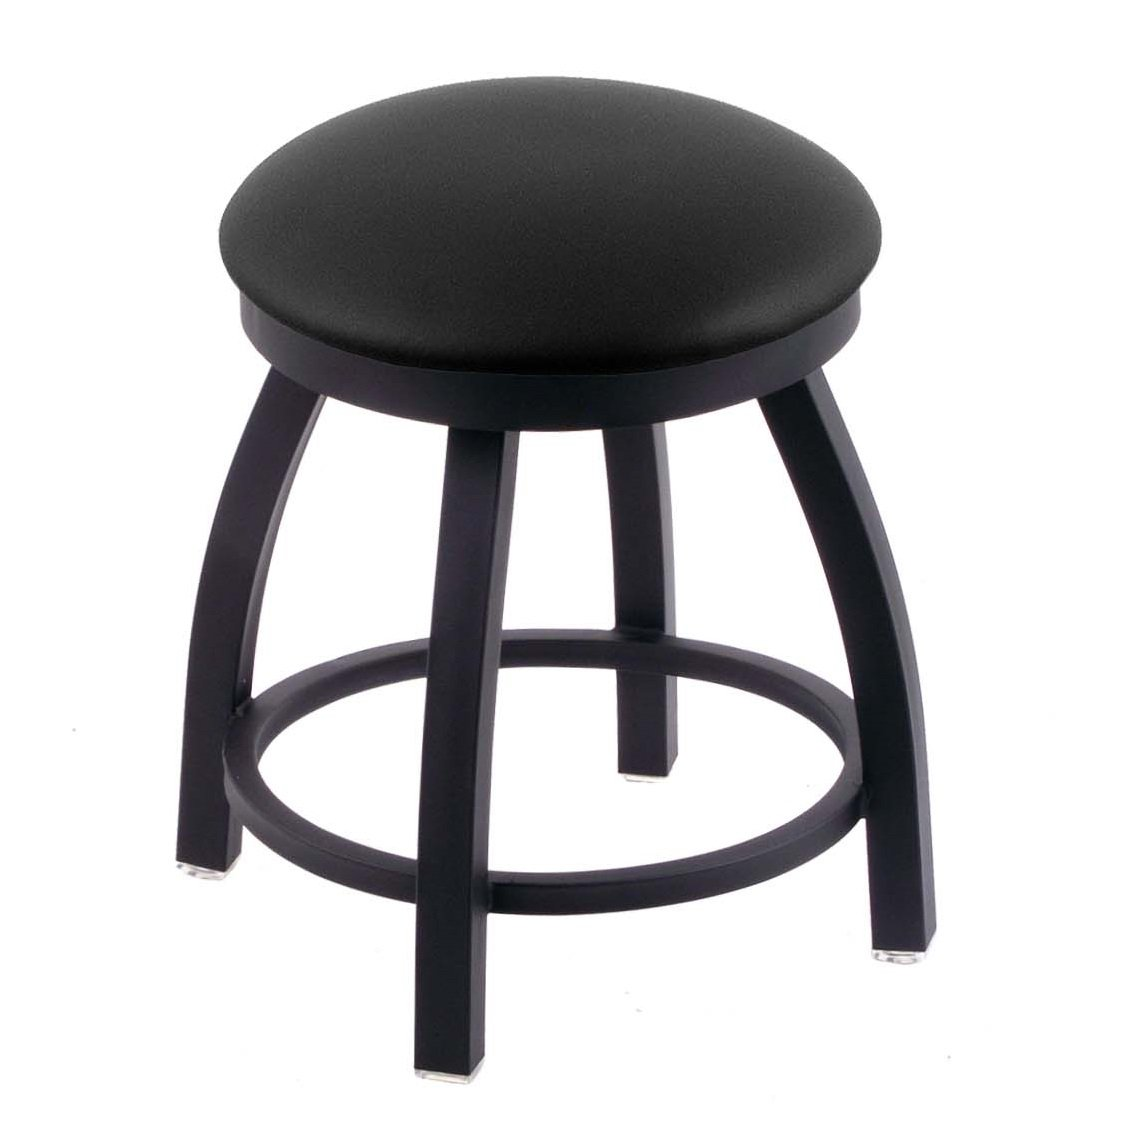 802 Misha Vanity Stool with Black Wrinkle Finish and Swivel Seat 18  Black Vinyl Kitchen u0026 Dining  sc 1 st  Amazon.com & Amazon.com: Holland Bar Stool Co. 802 Misha Vanity Stool with ... islam-shia.org